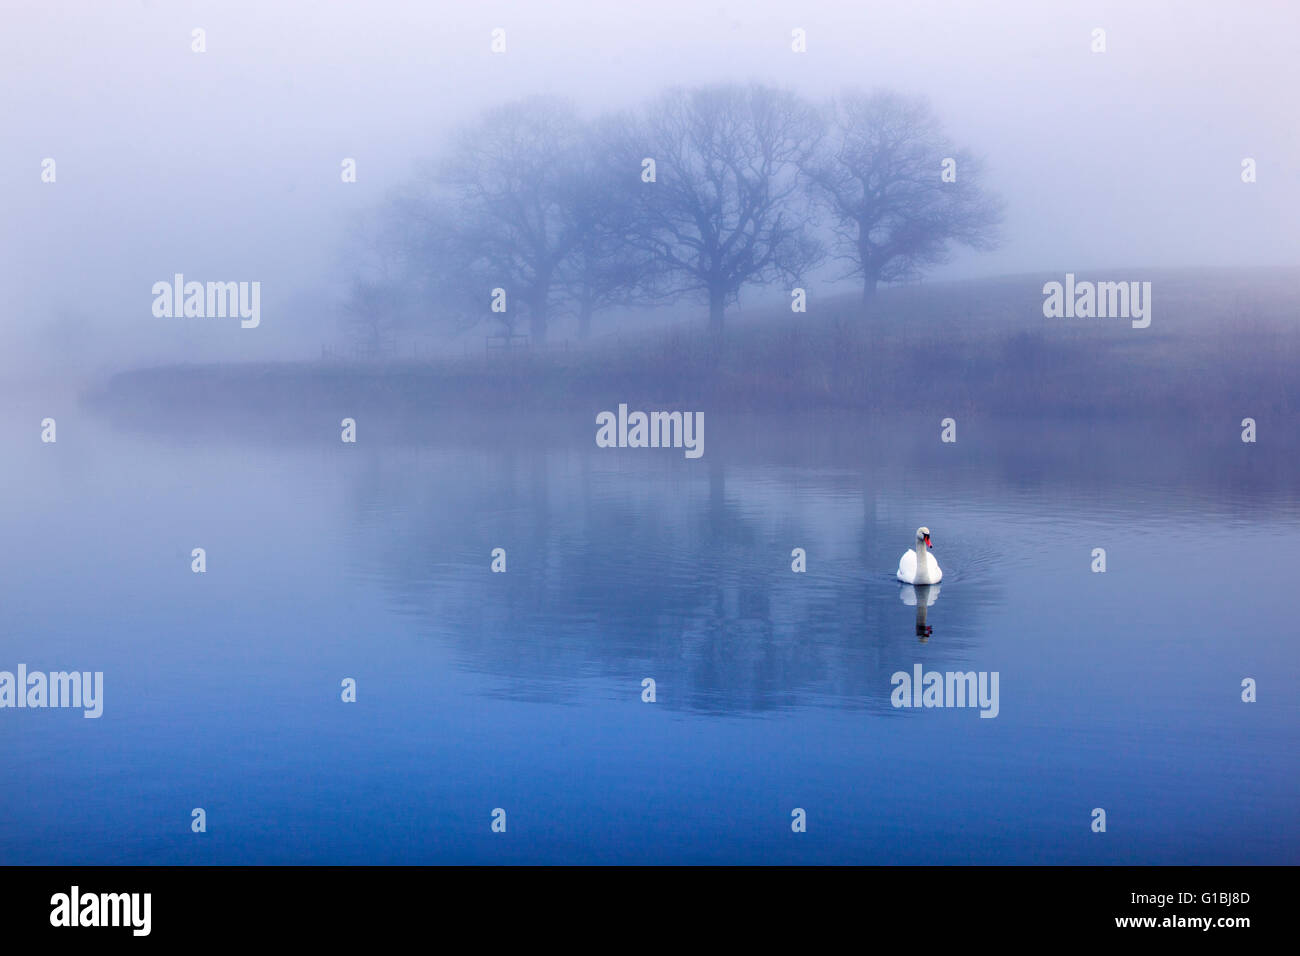 Mute swan in early morning mist and trees reflected in a lake - Stock Image